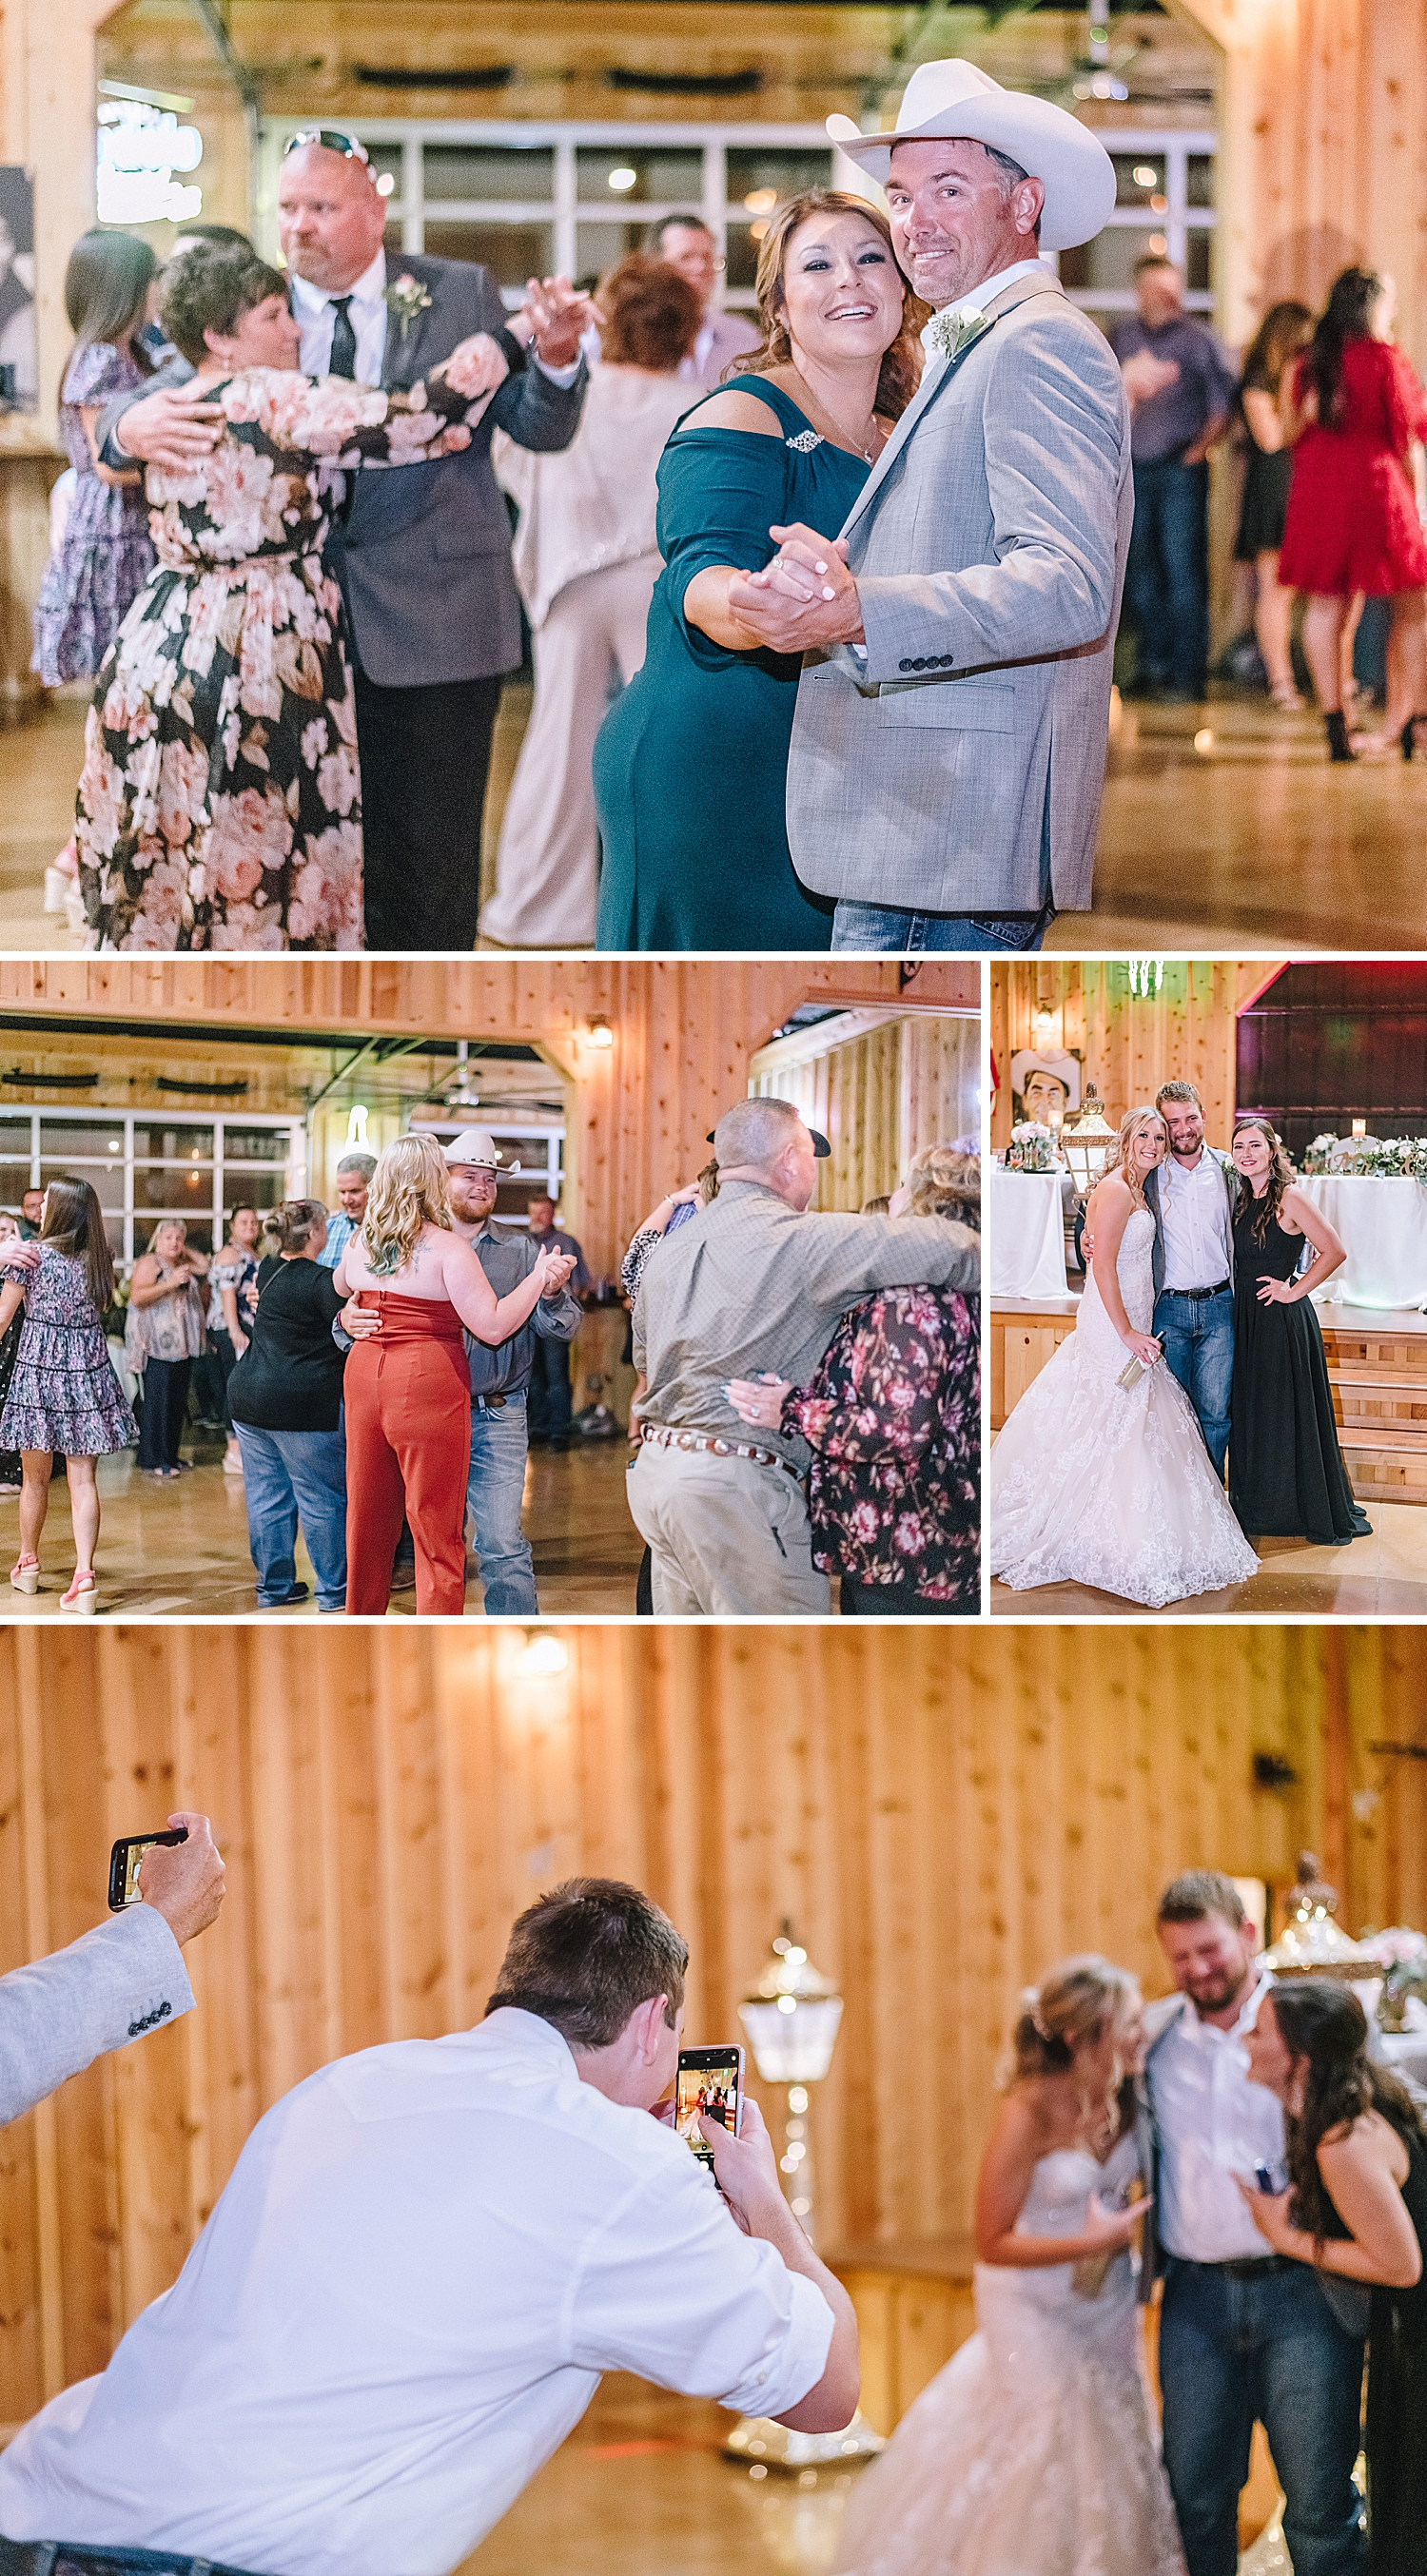 Rackler-Ranch-LaVernia-Texas-Wedding-Carly-Barton-Photography_0161.jpg